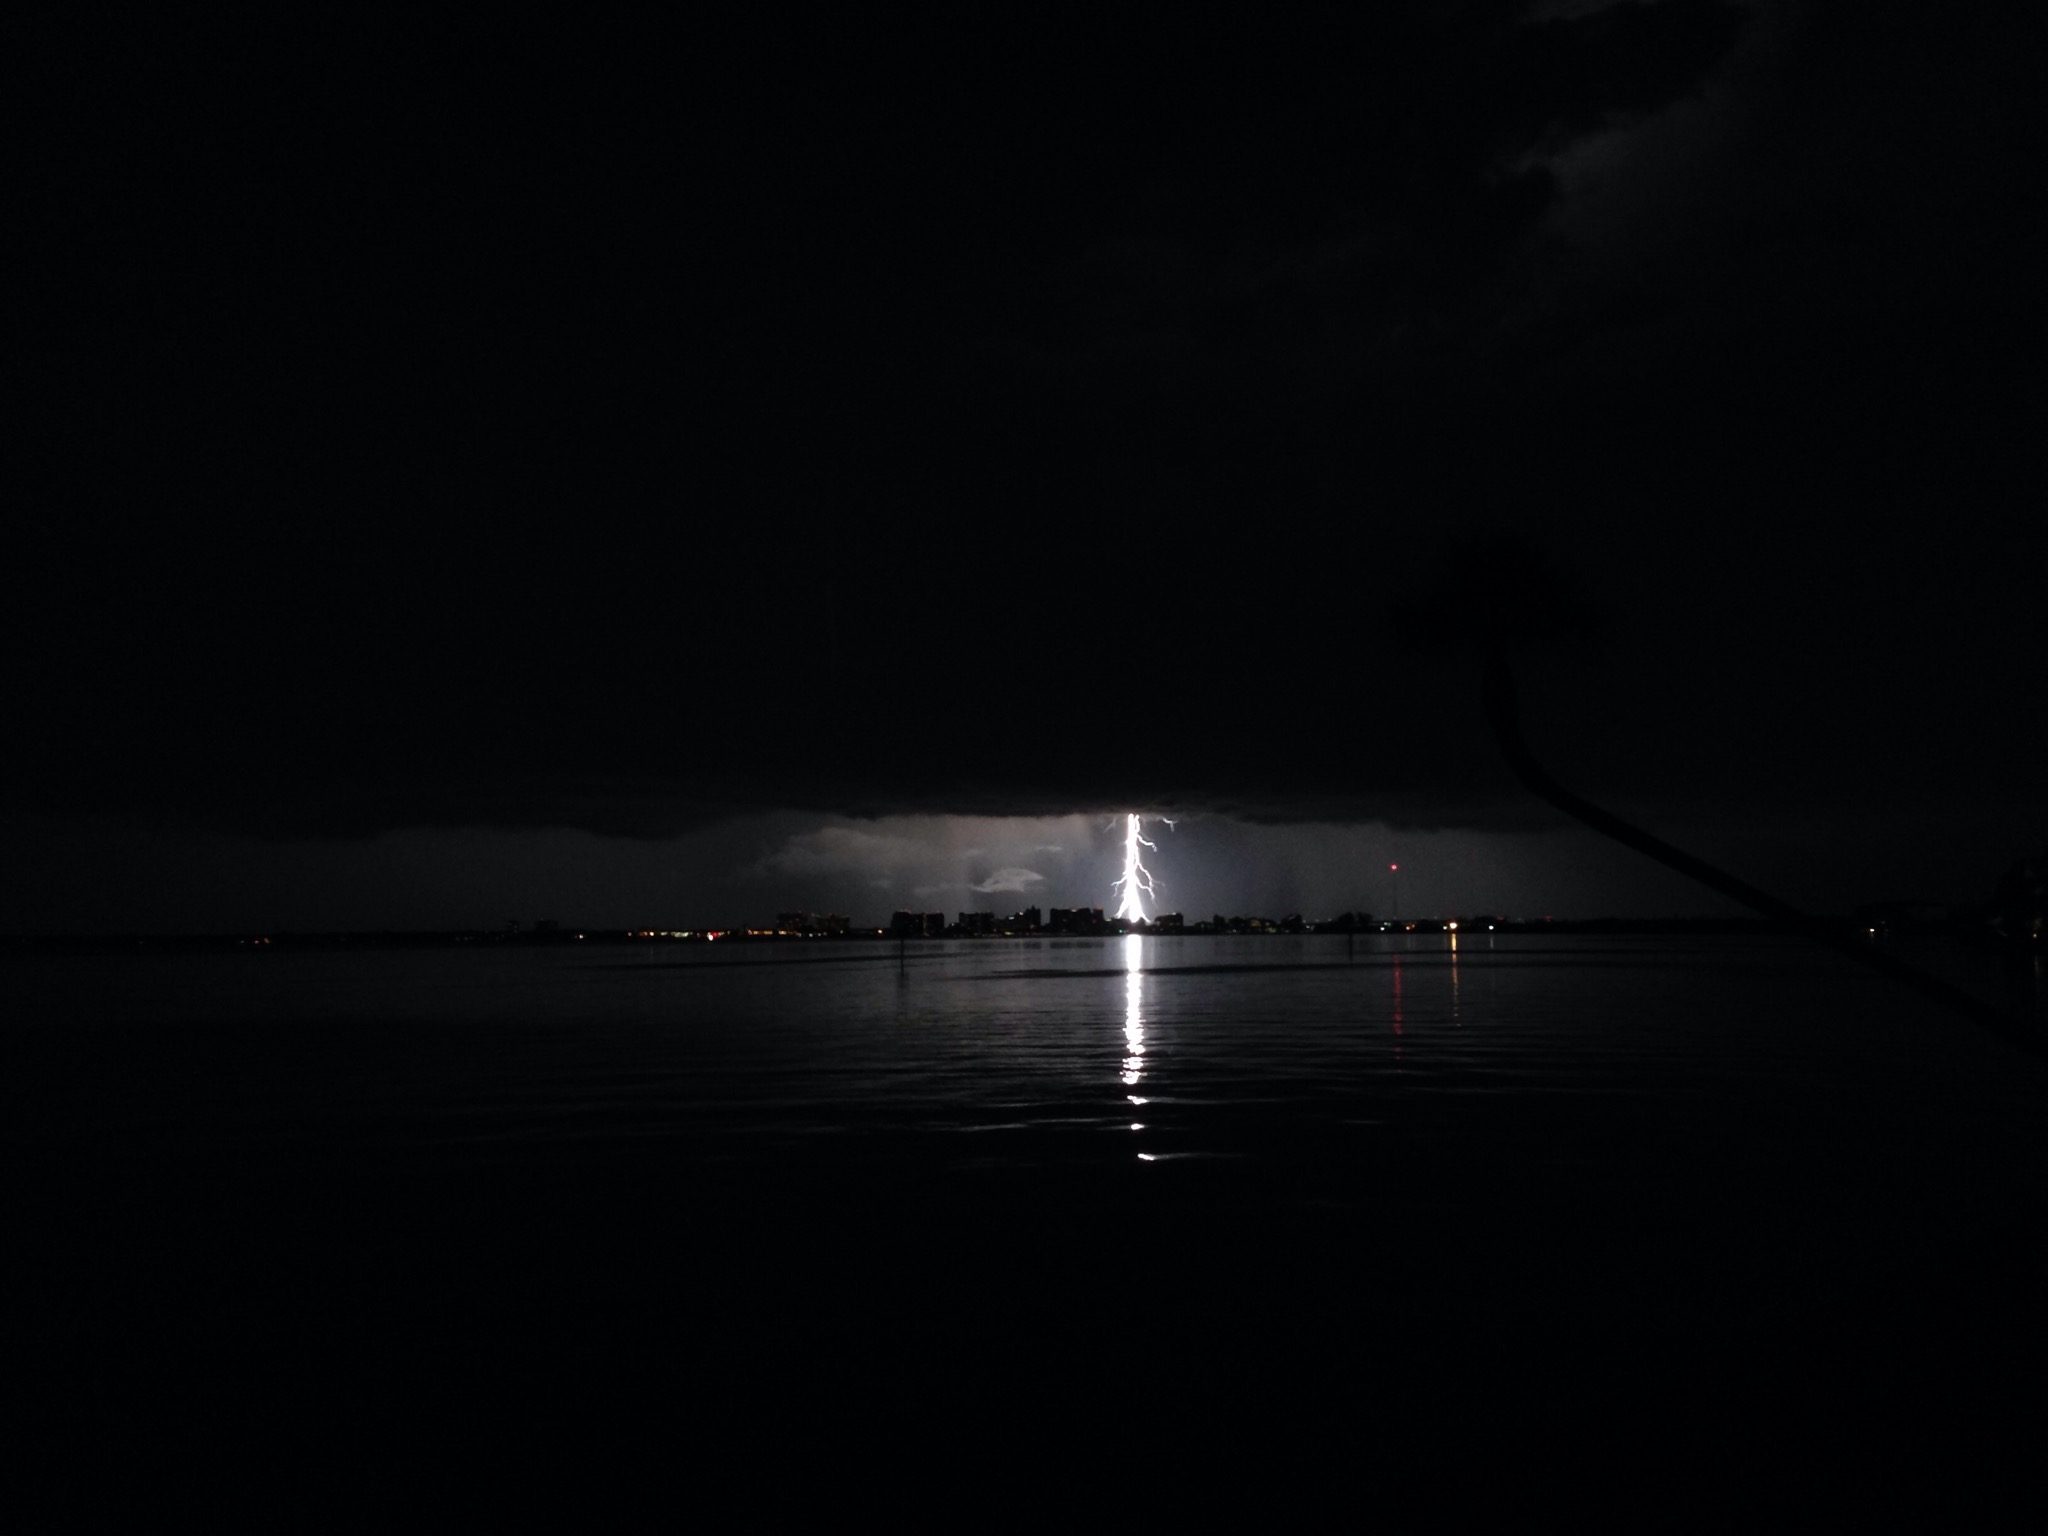 Lightning strike on Sarasota Bay